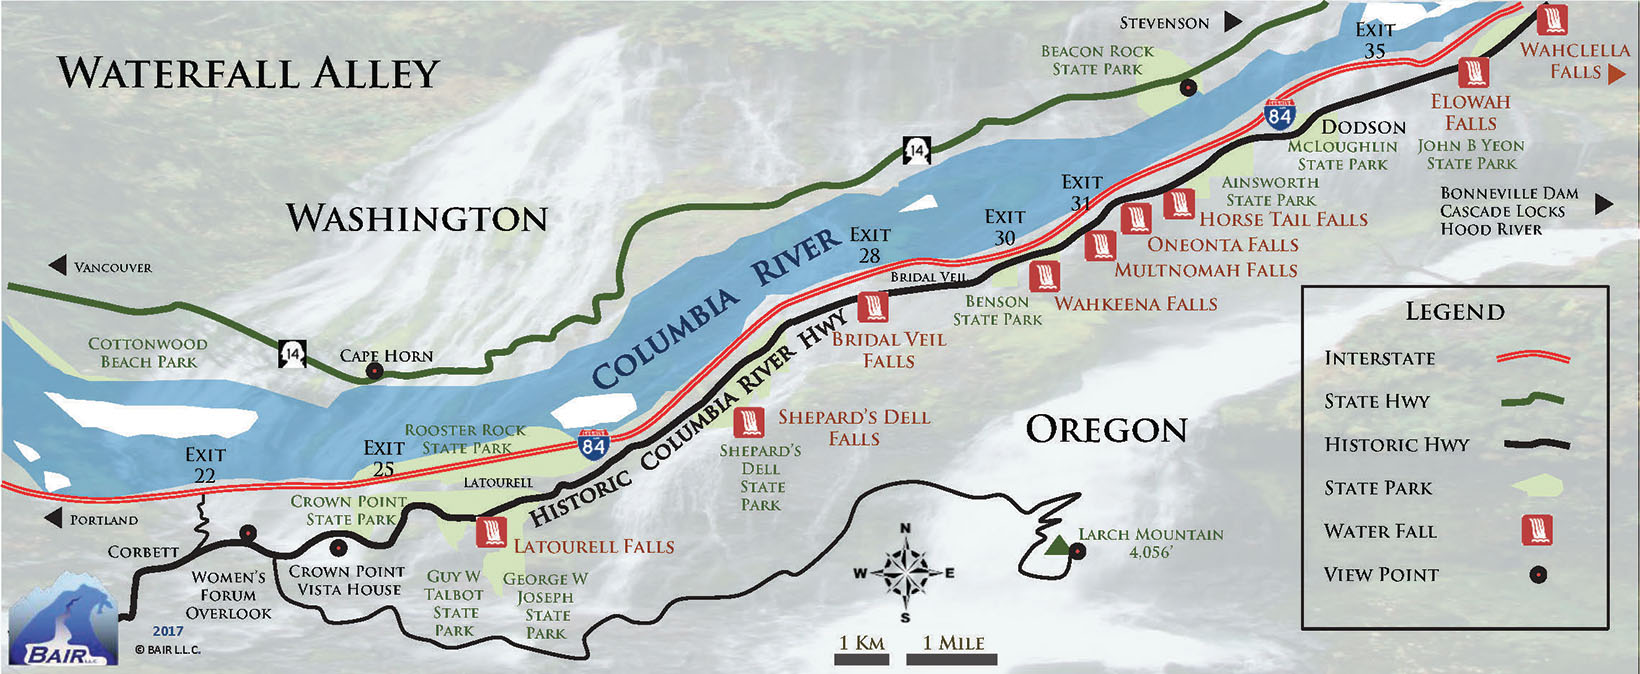 Map of Waterfall Alley along Oregon's Historic Columbia River Highway in the Gorge